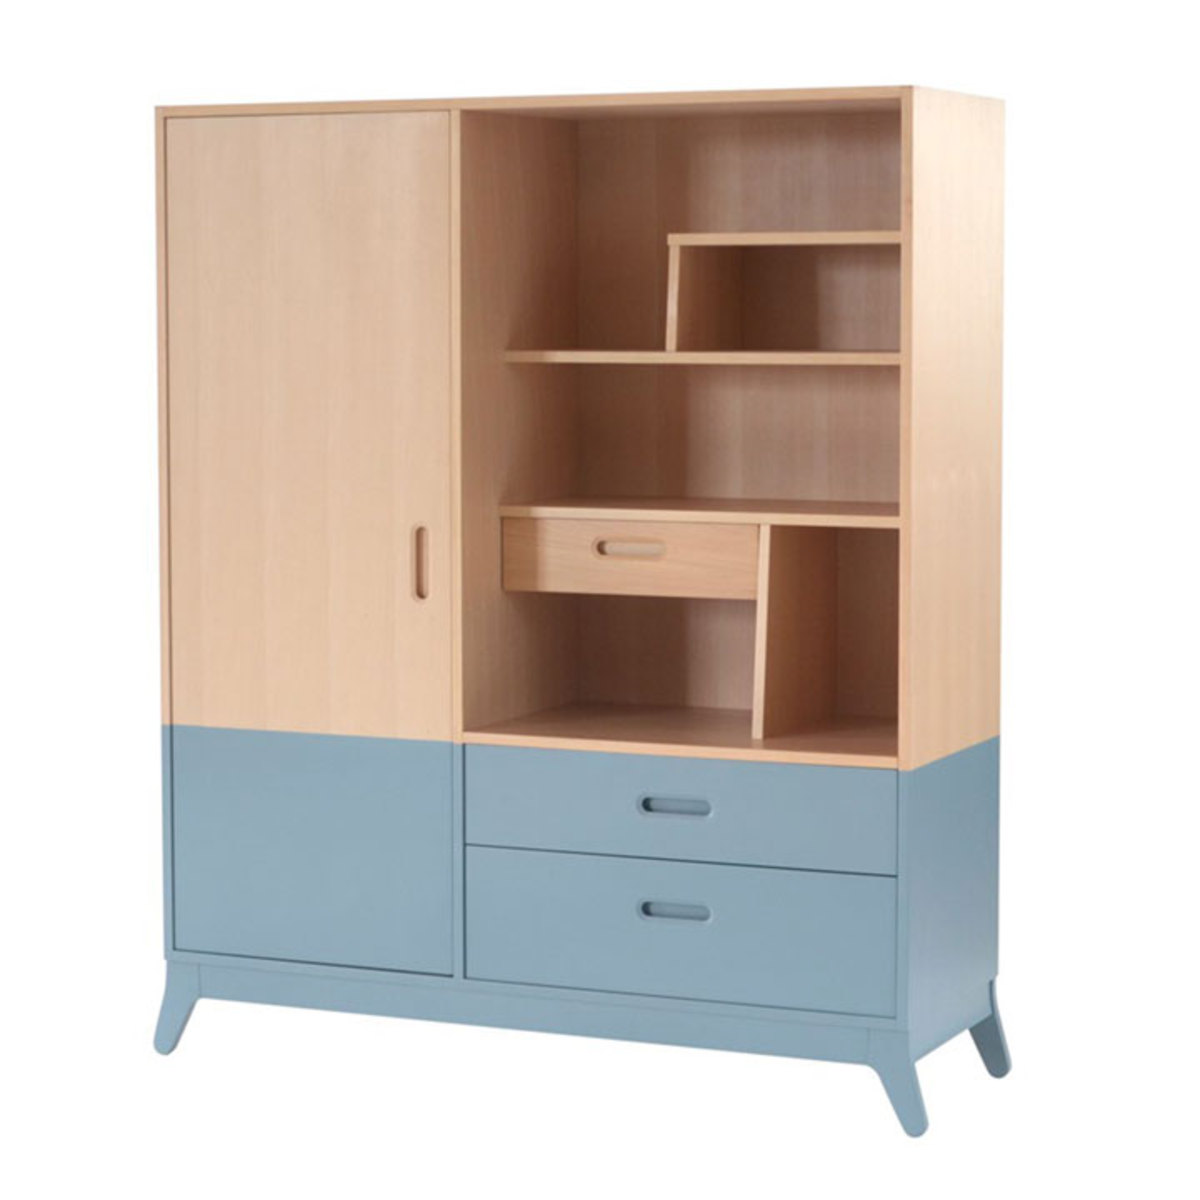 nobodinoz armoire horizon bleu thalassa armoire. Black Bedroom Furniture Sets. Home Design Ideas